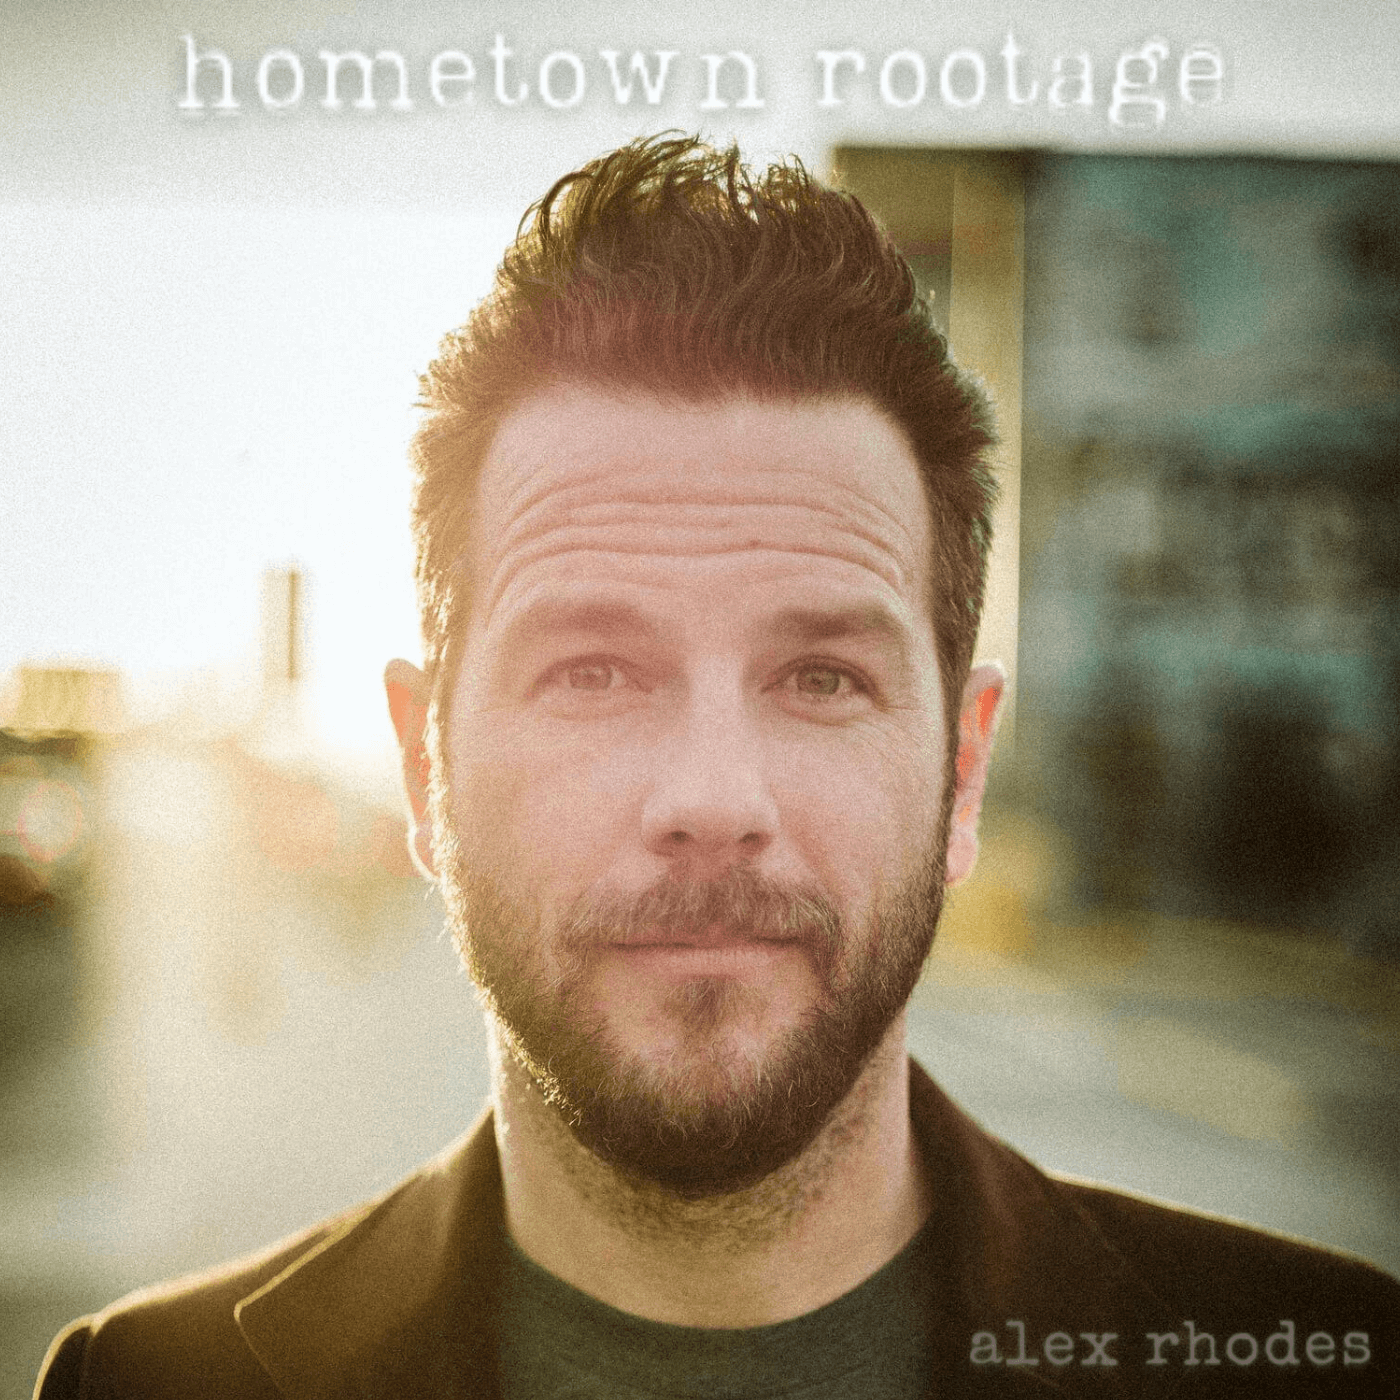 Alex Rhodes - Hometown Rootage Album